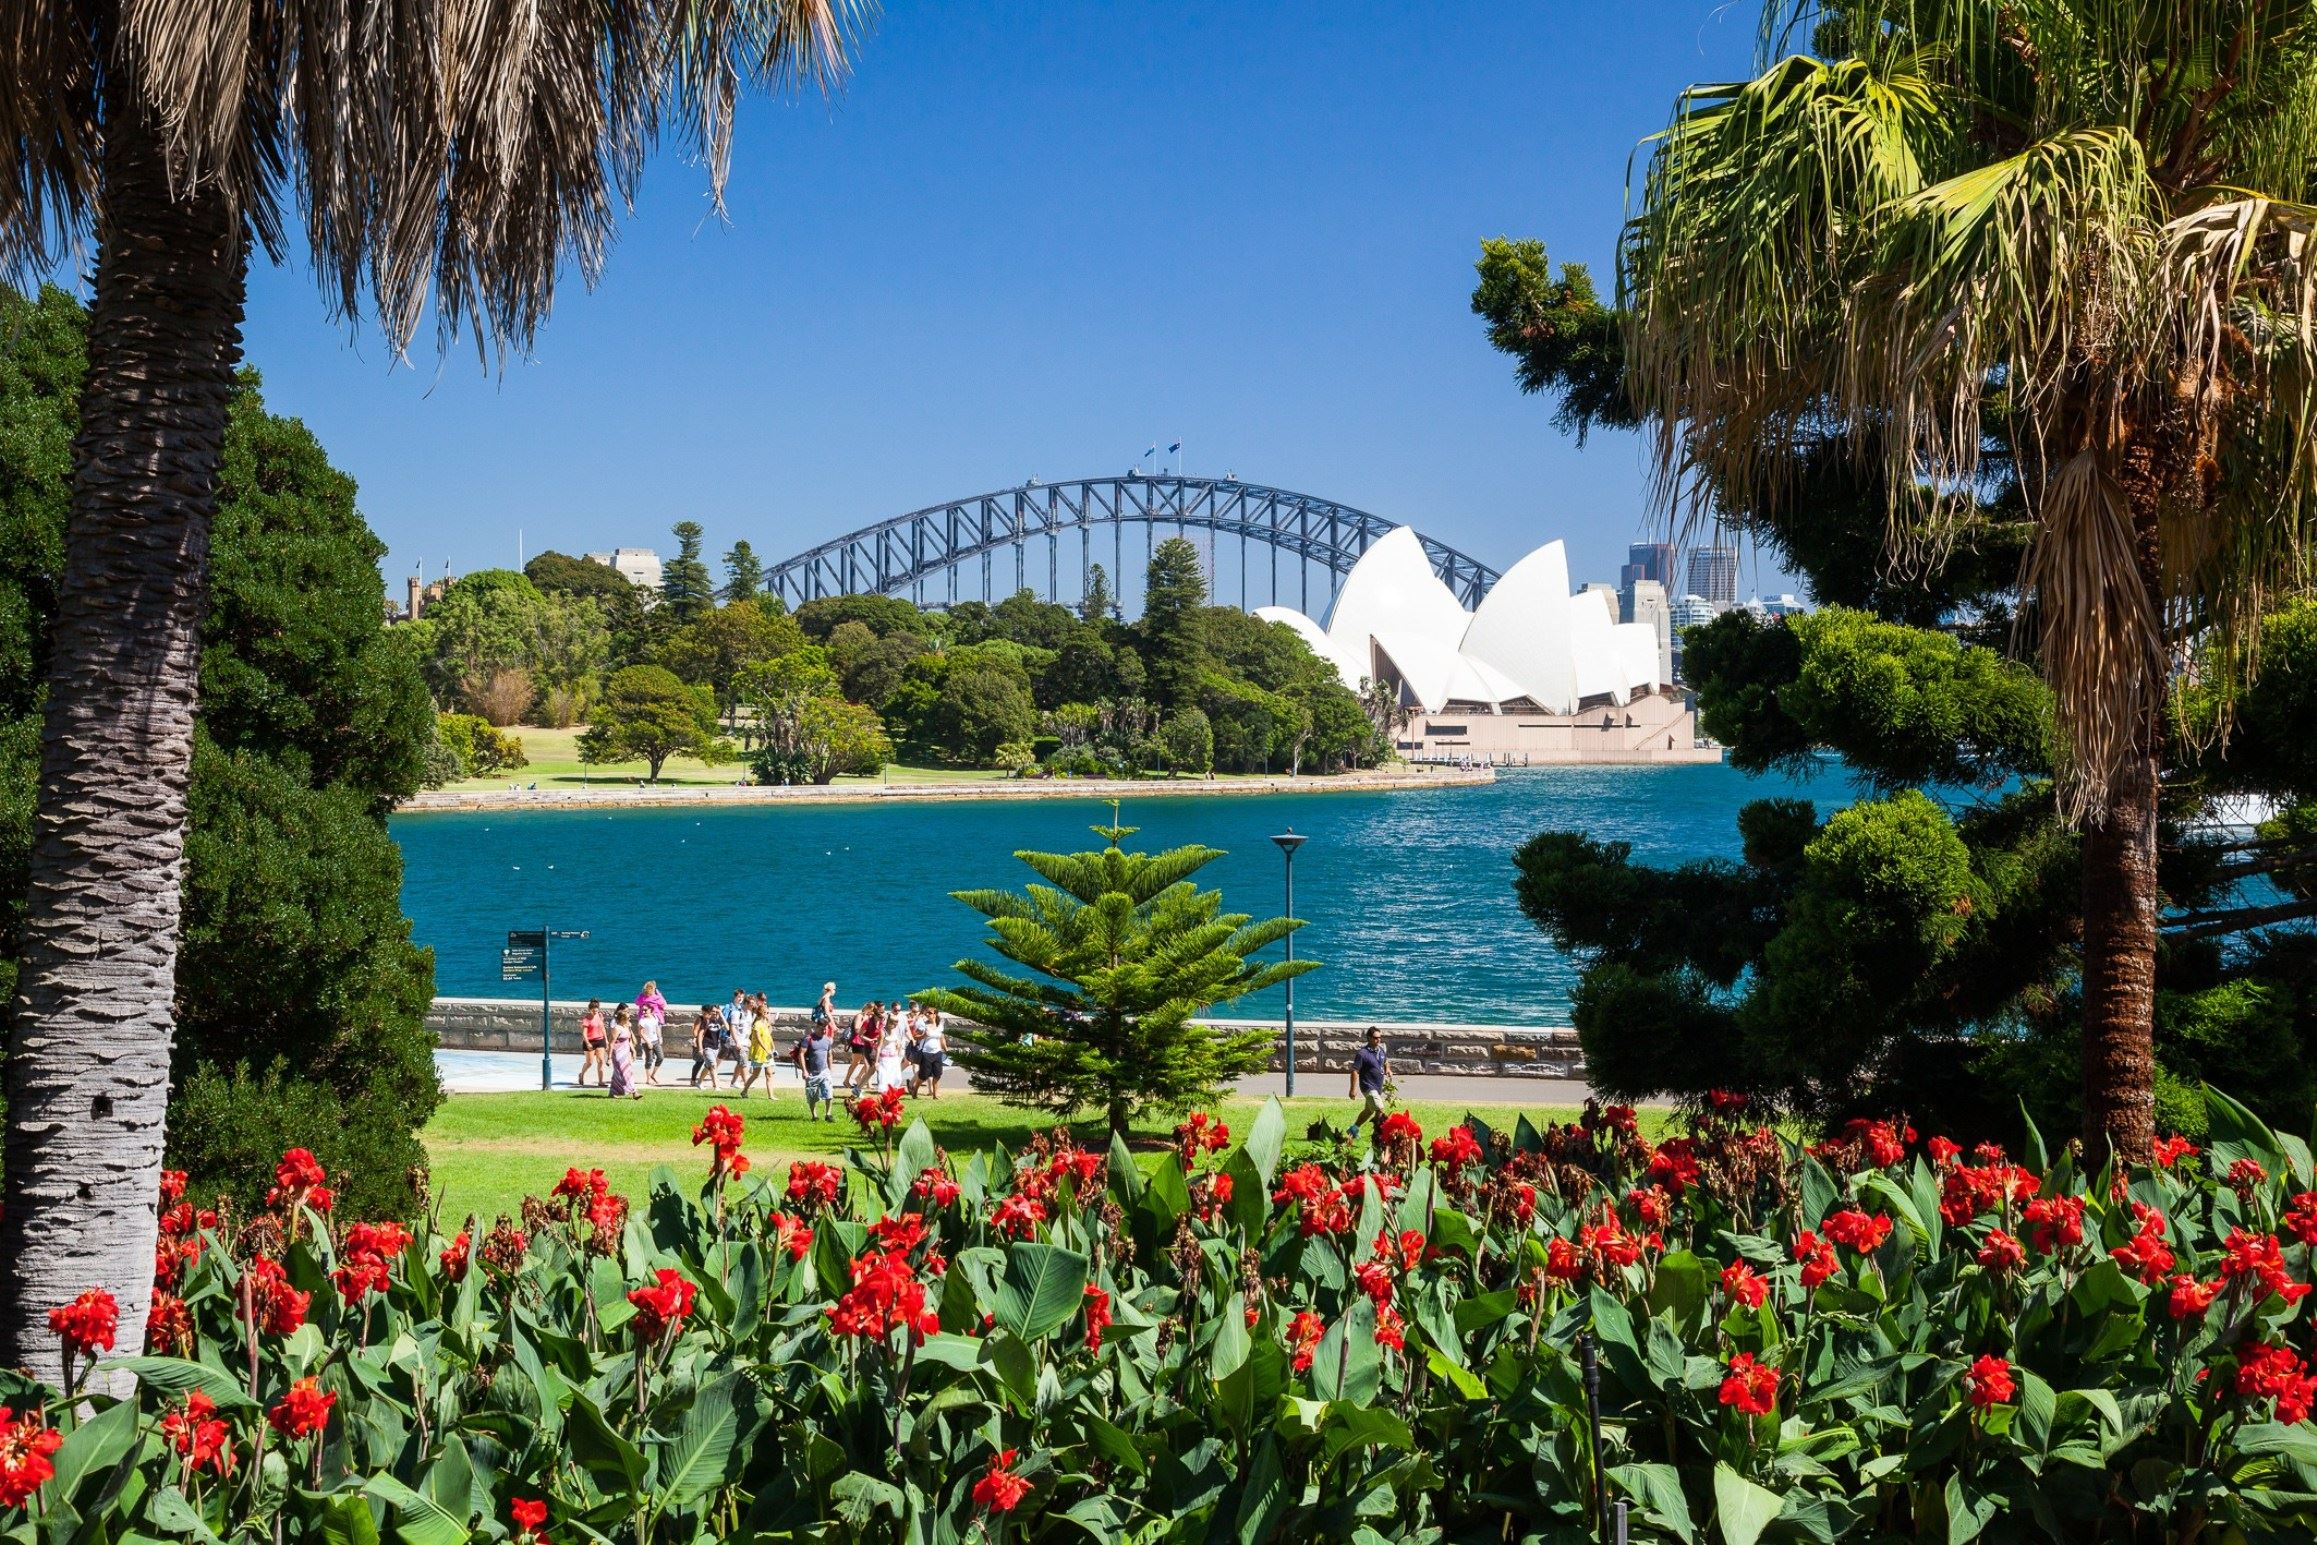 What are dates in Sydney